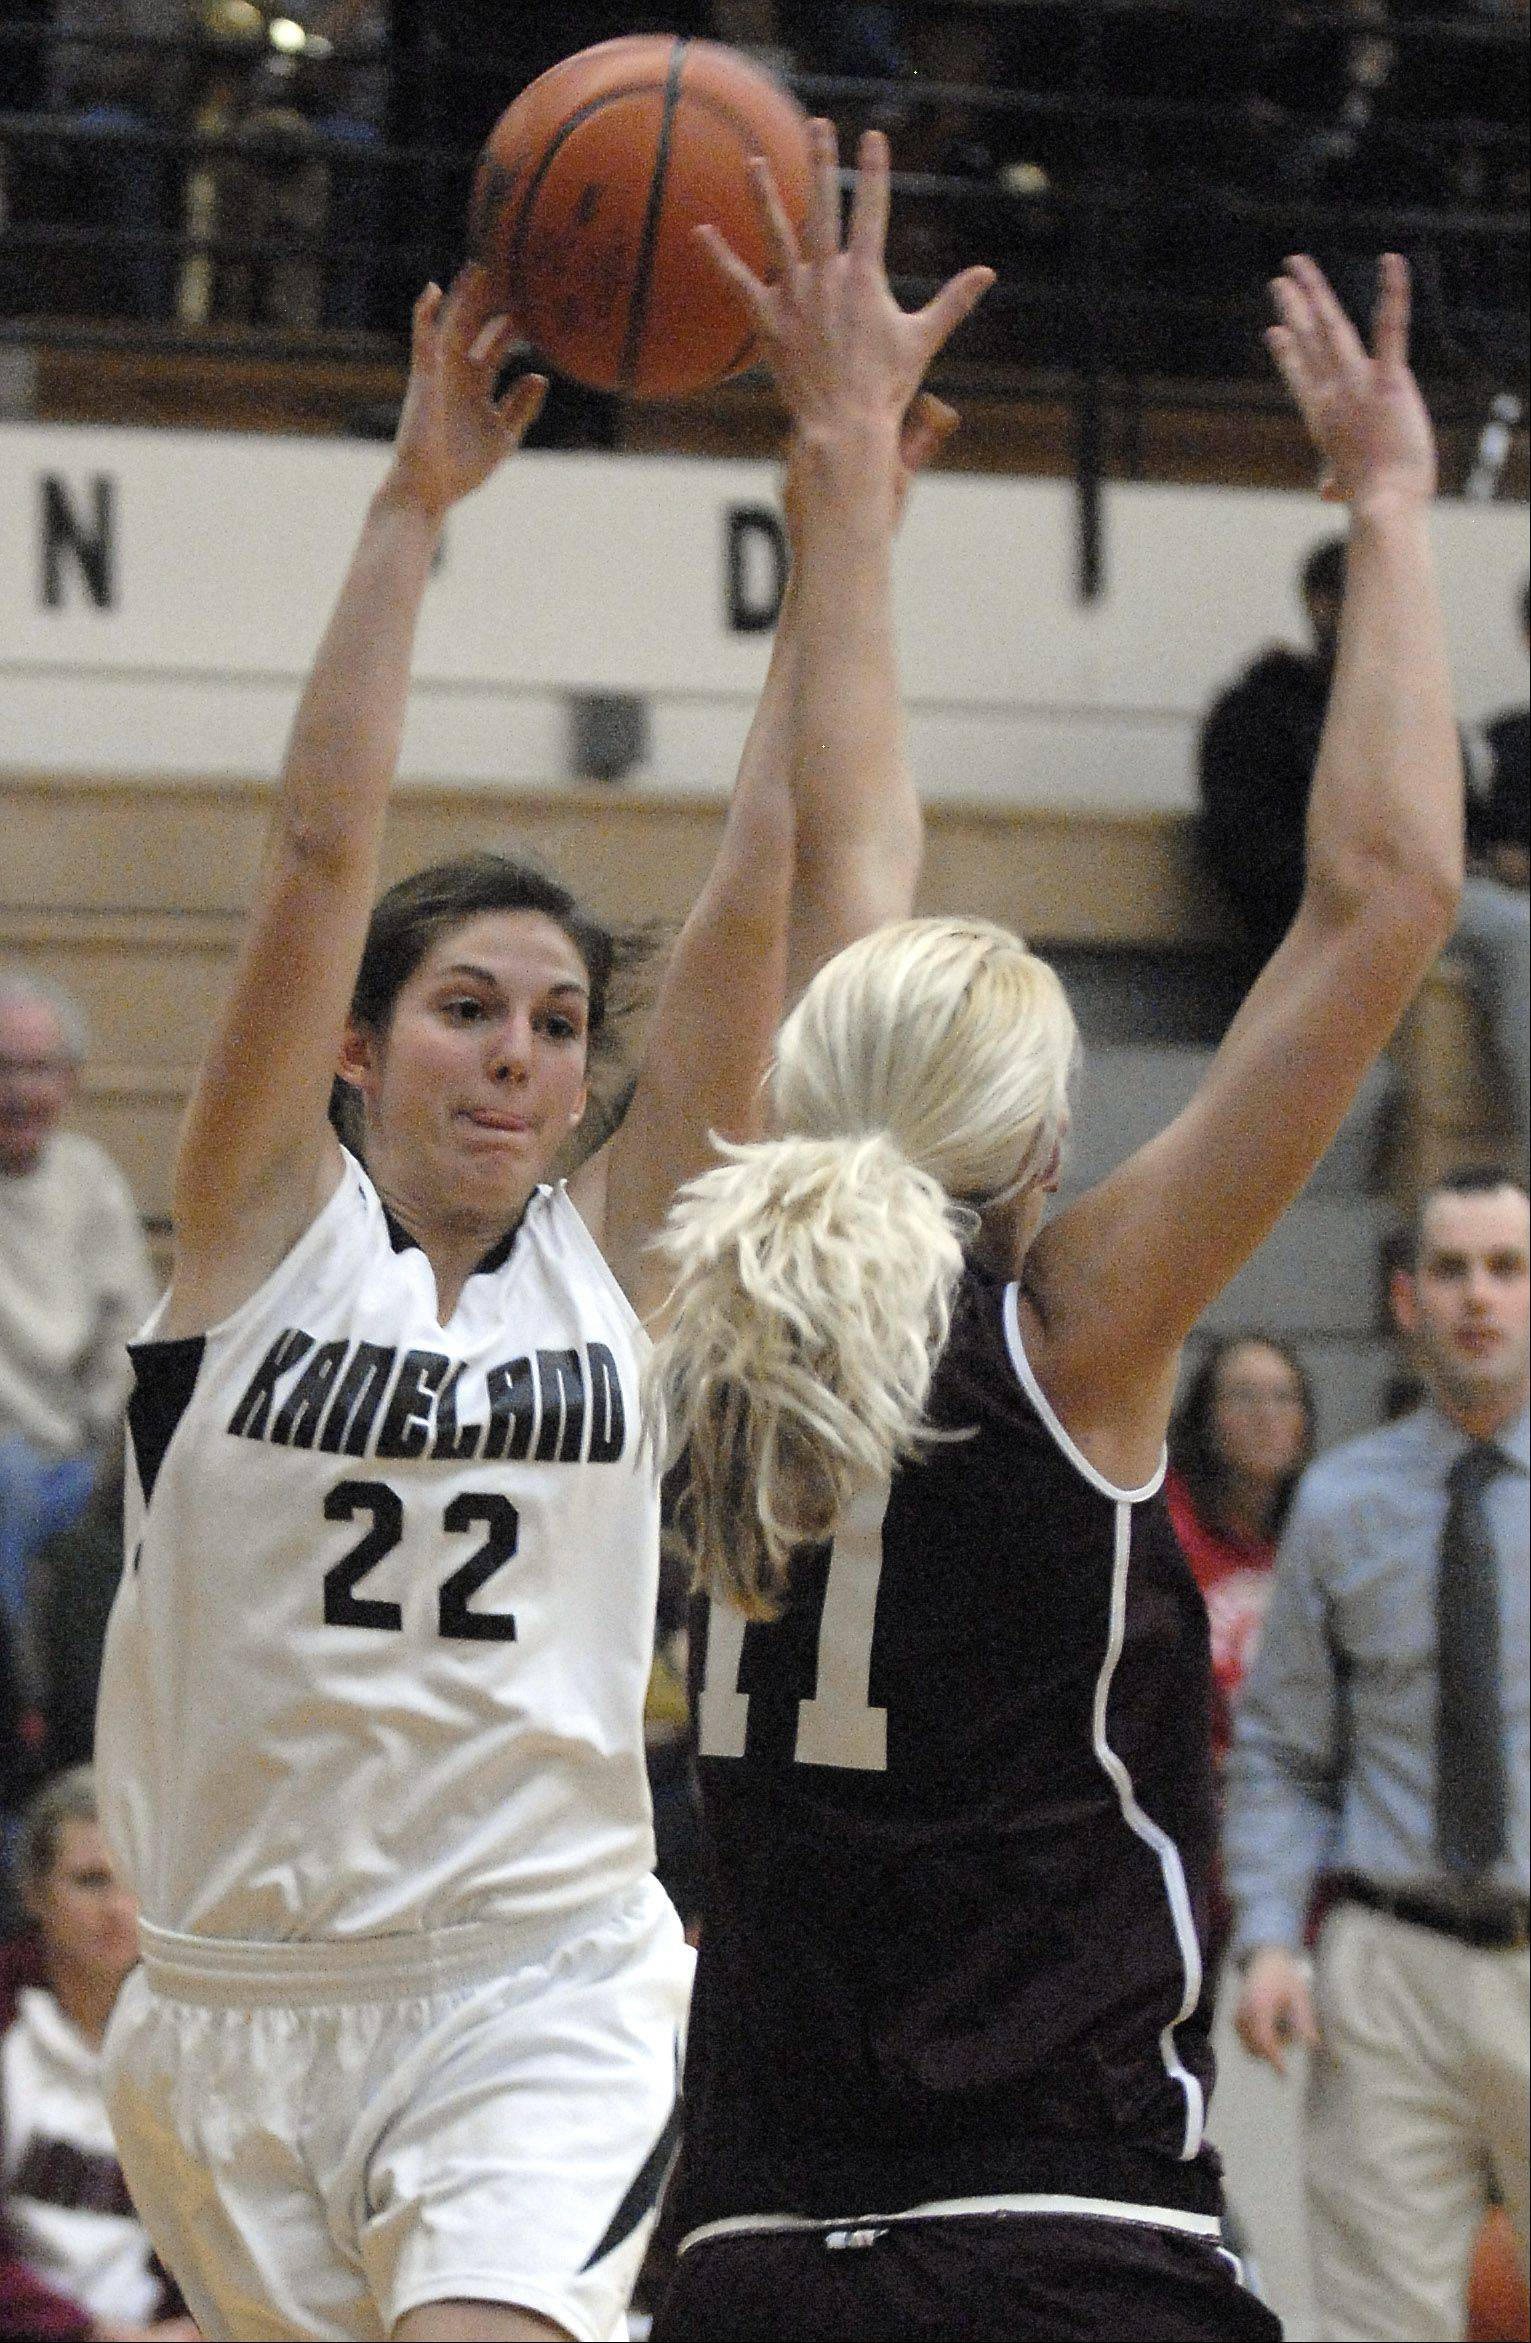 Kaneland rallies past Marengo